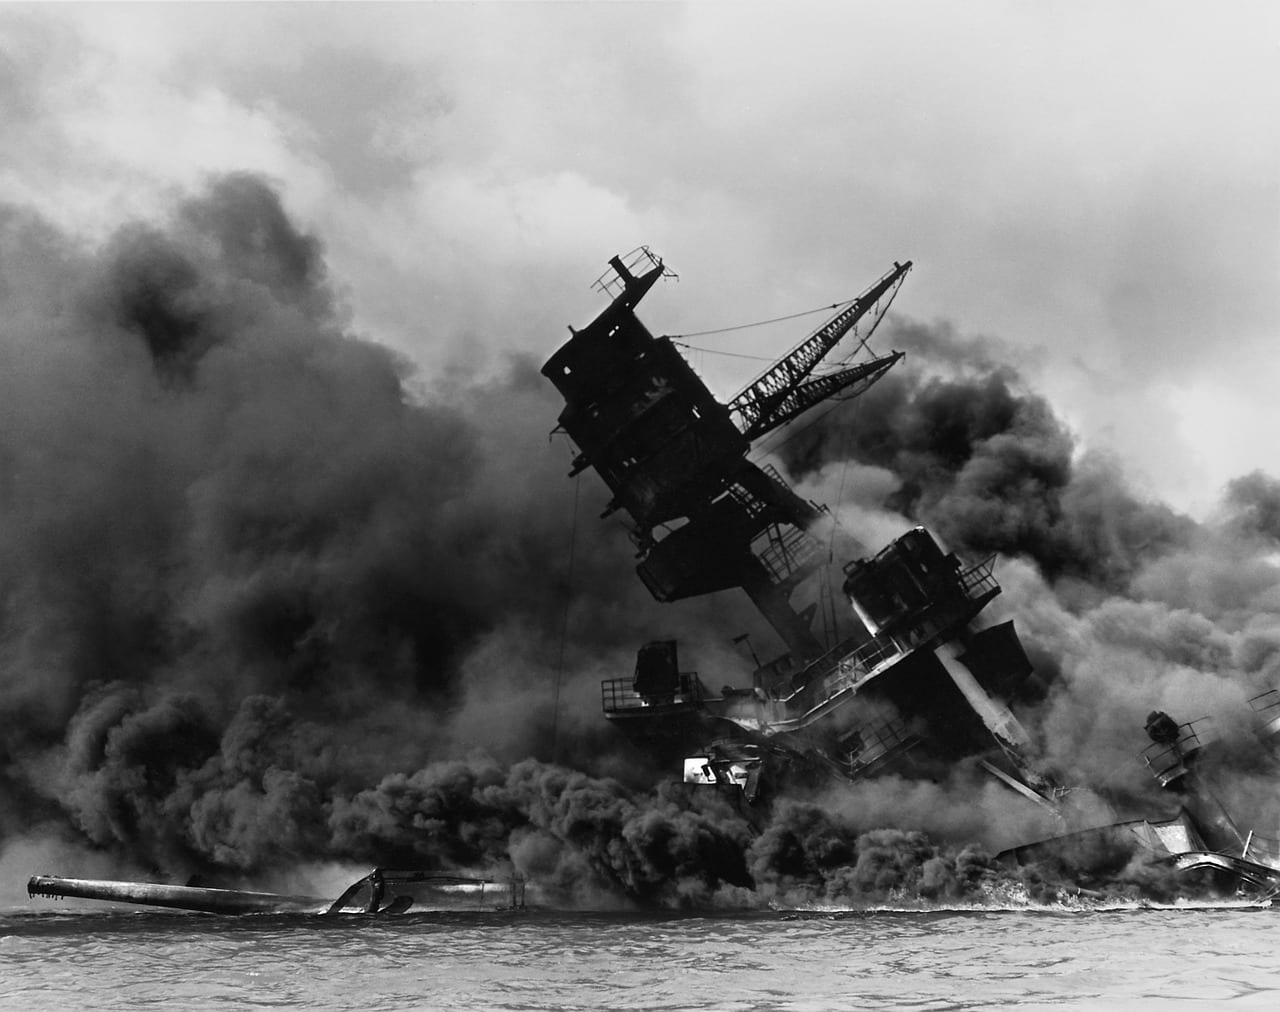 Pearl Harbor Remembrance Day Is On Dec. 7th – Here Are Related Resources